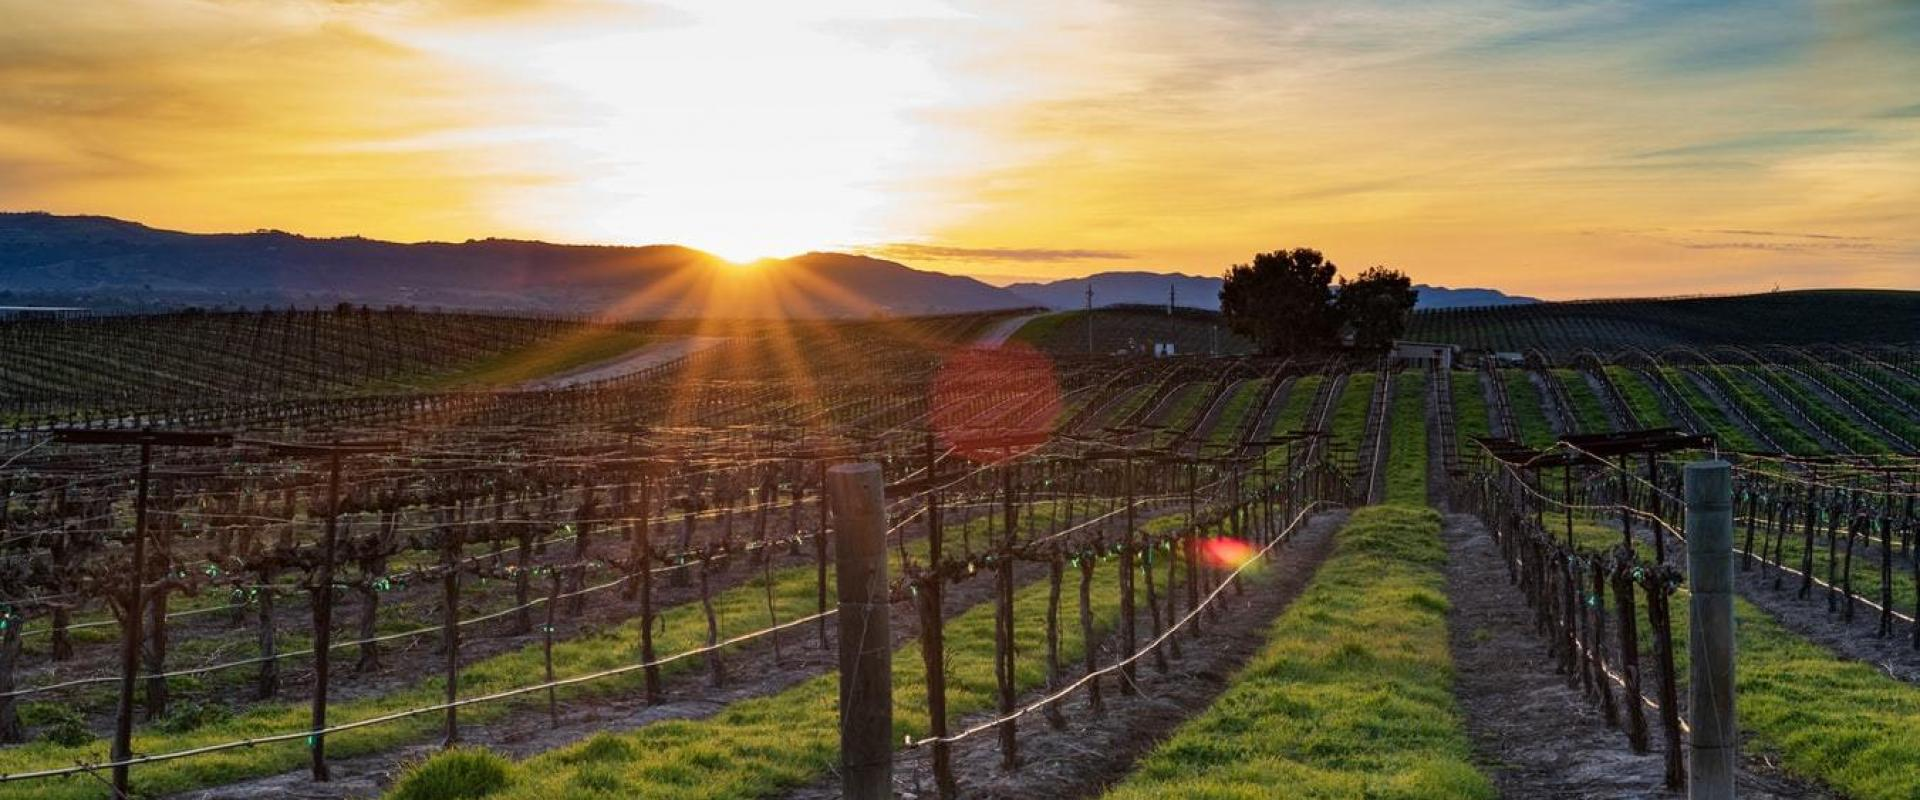 Large quality vineyard property For Sale in Barossa Valley, SA contact Yun Han